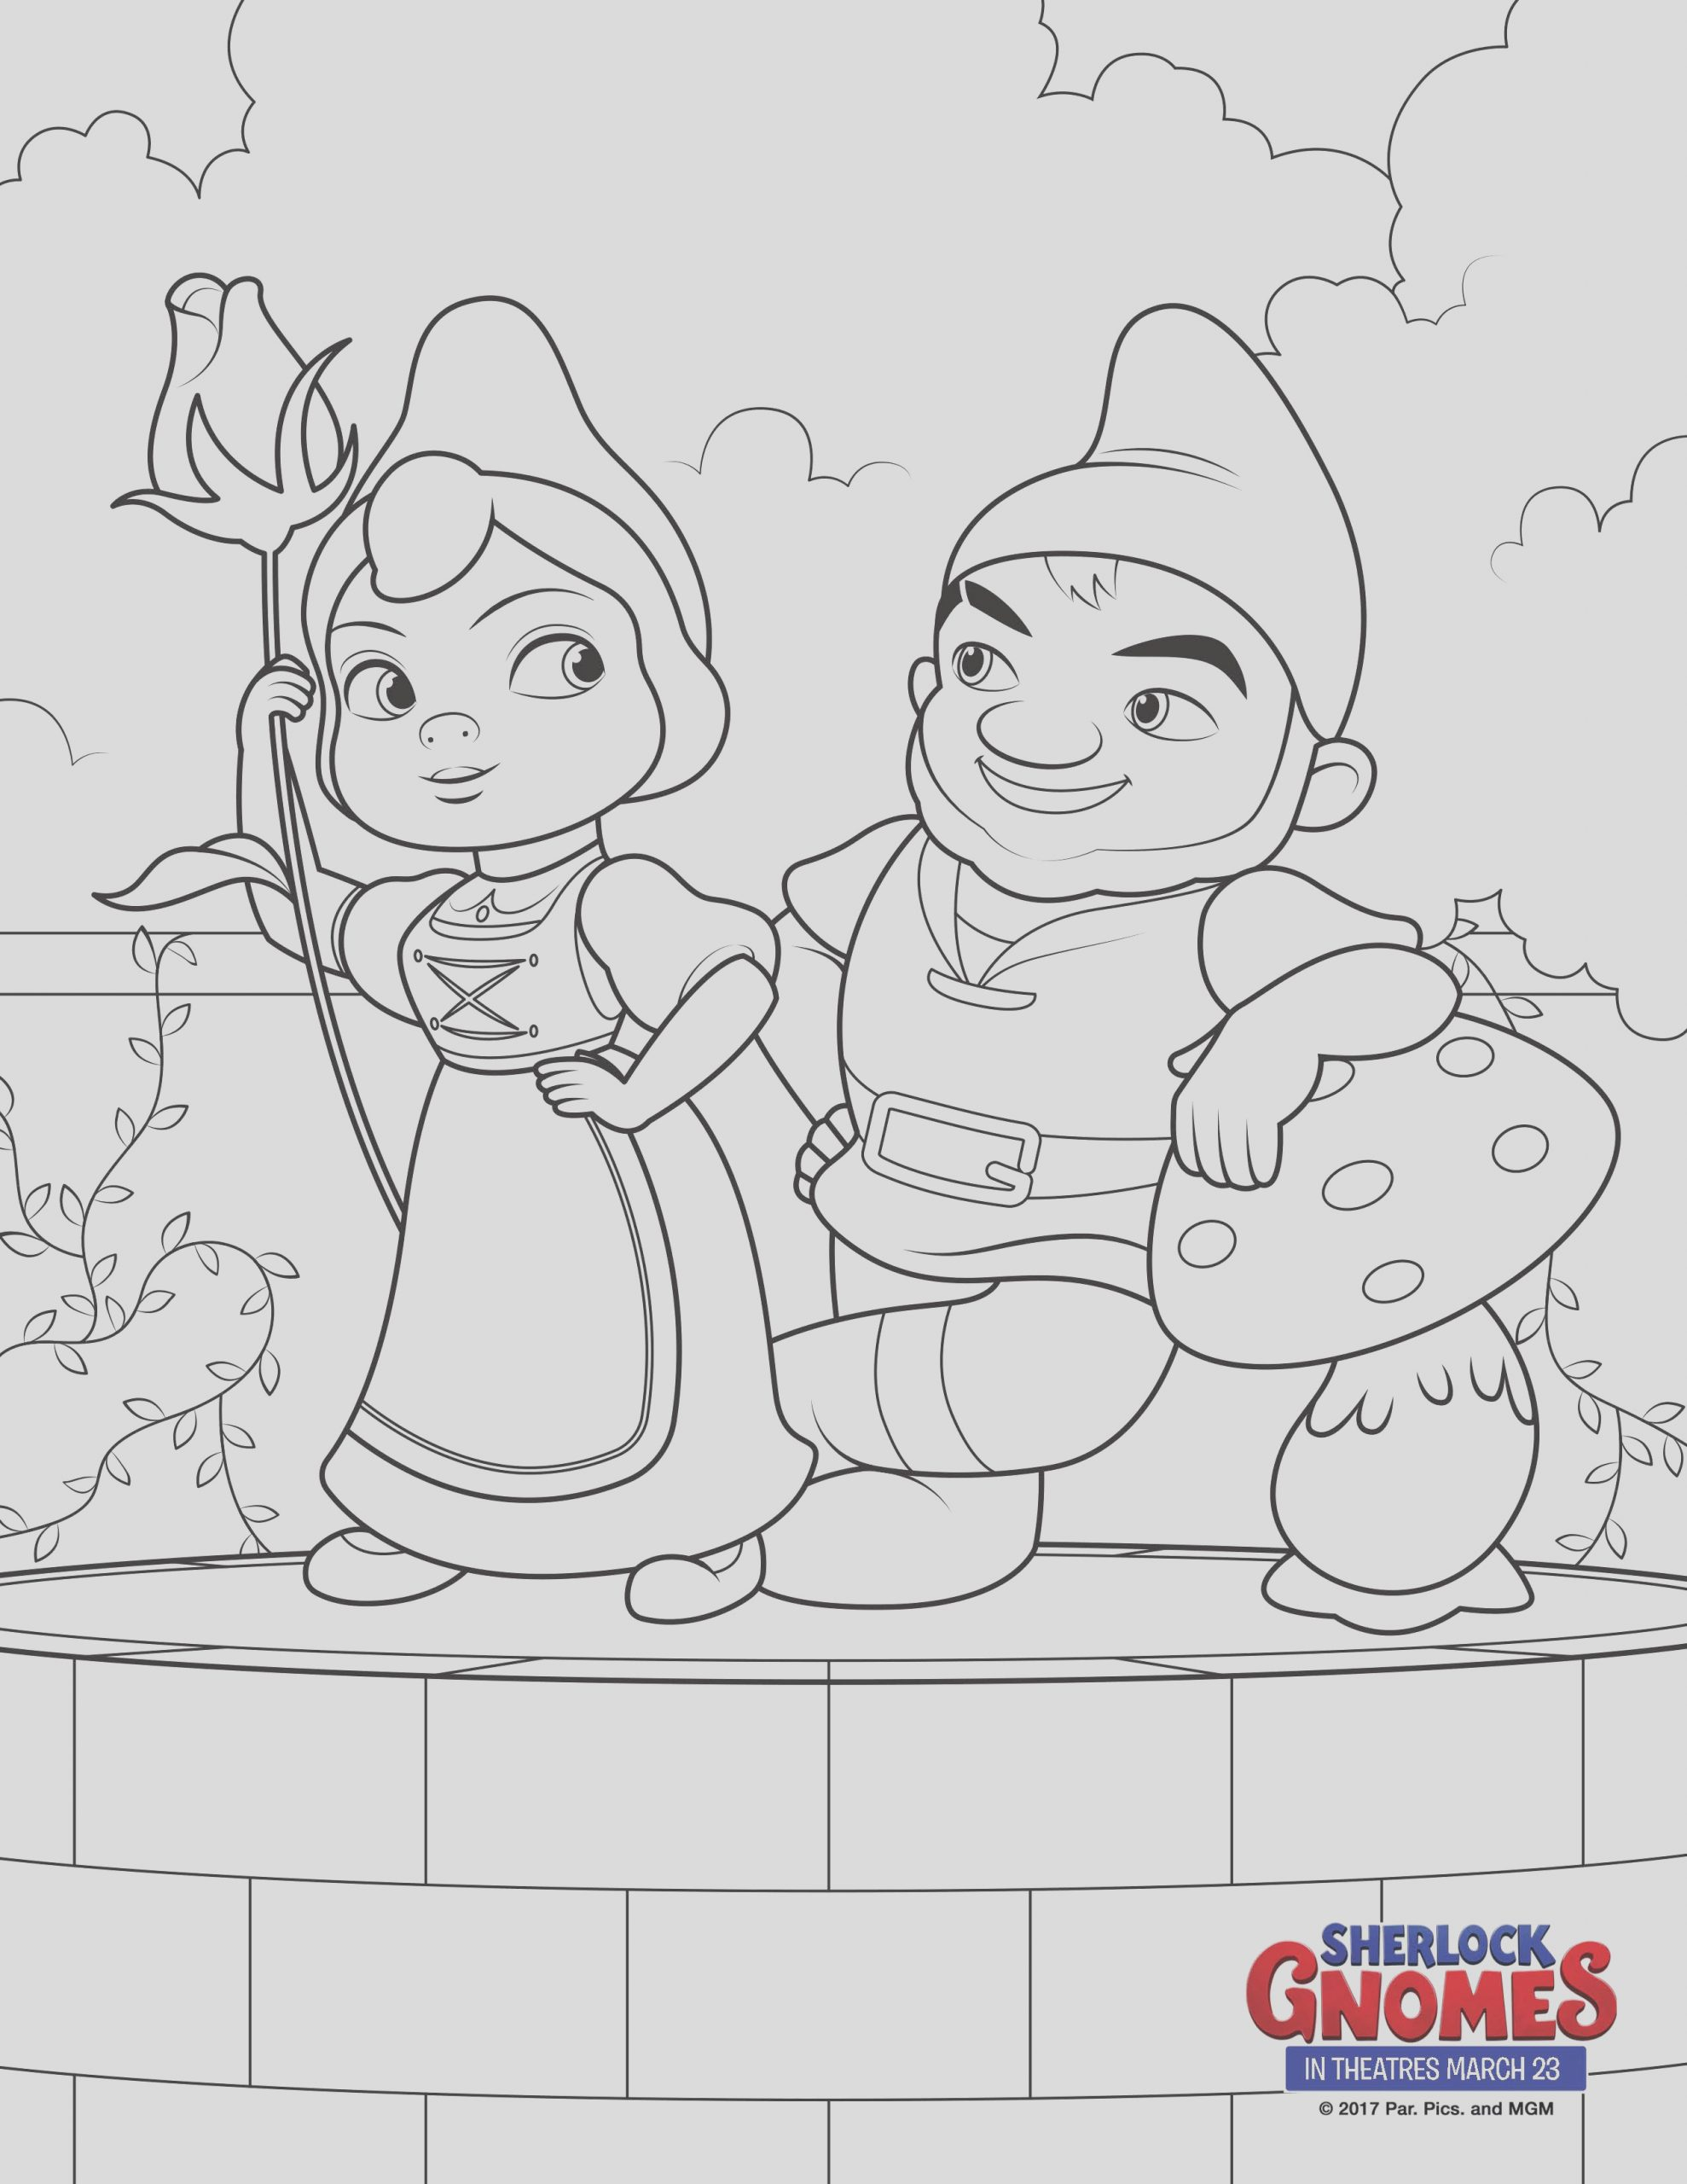 sherlock gnomes coloring sheets